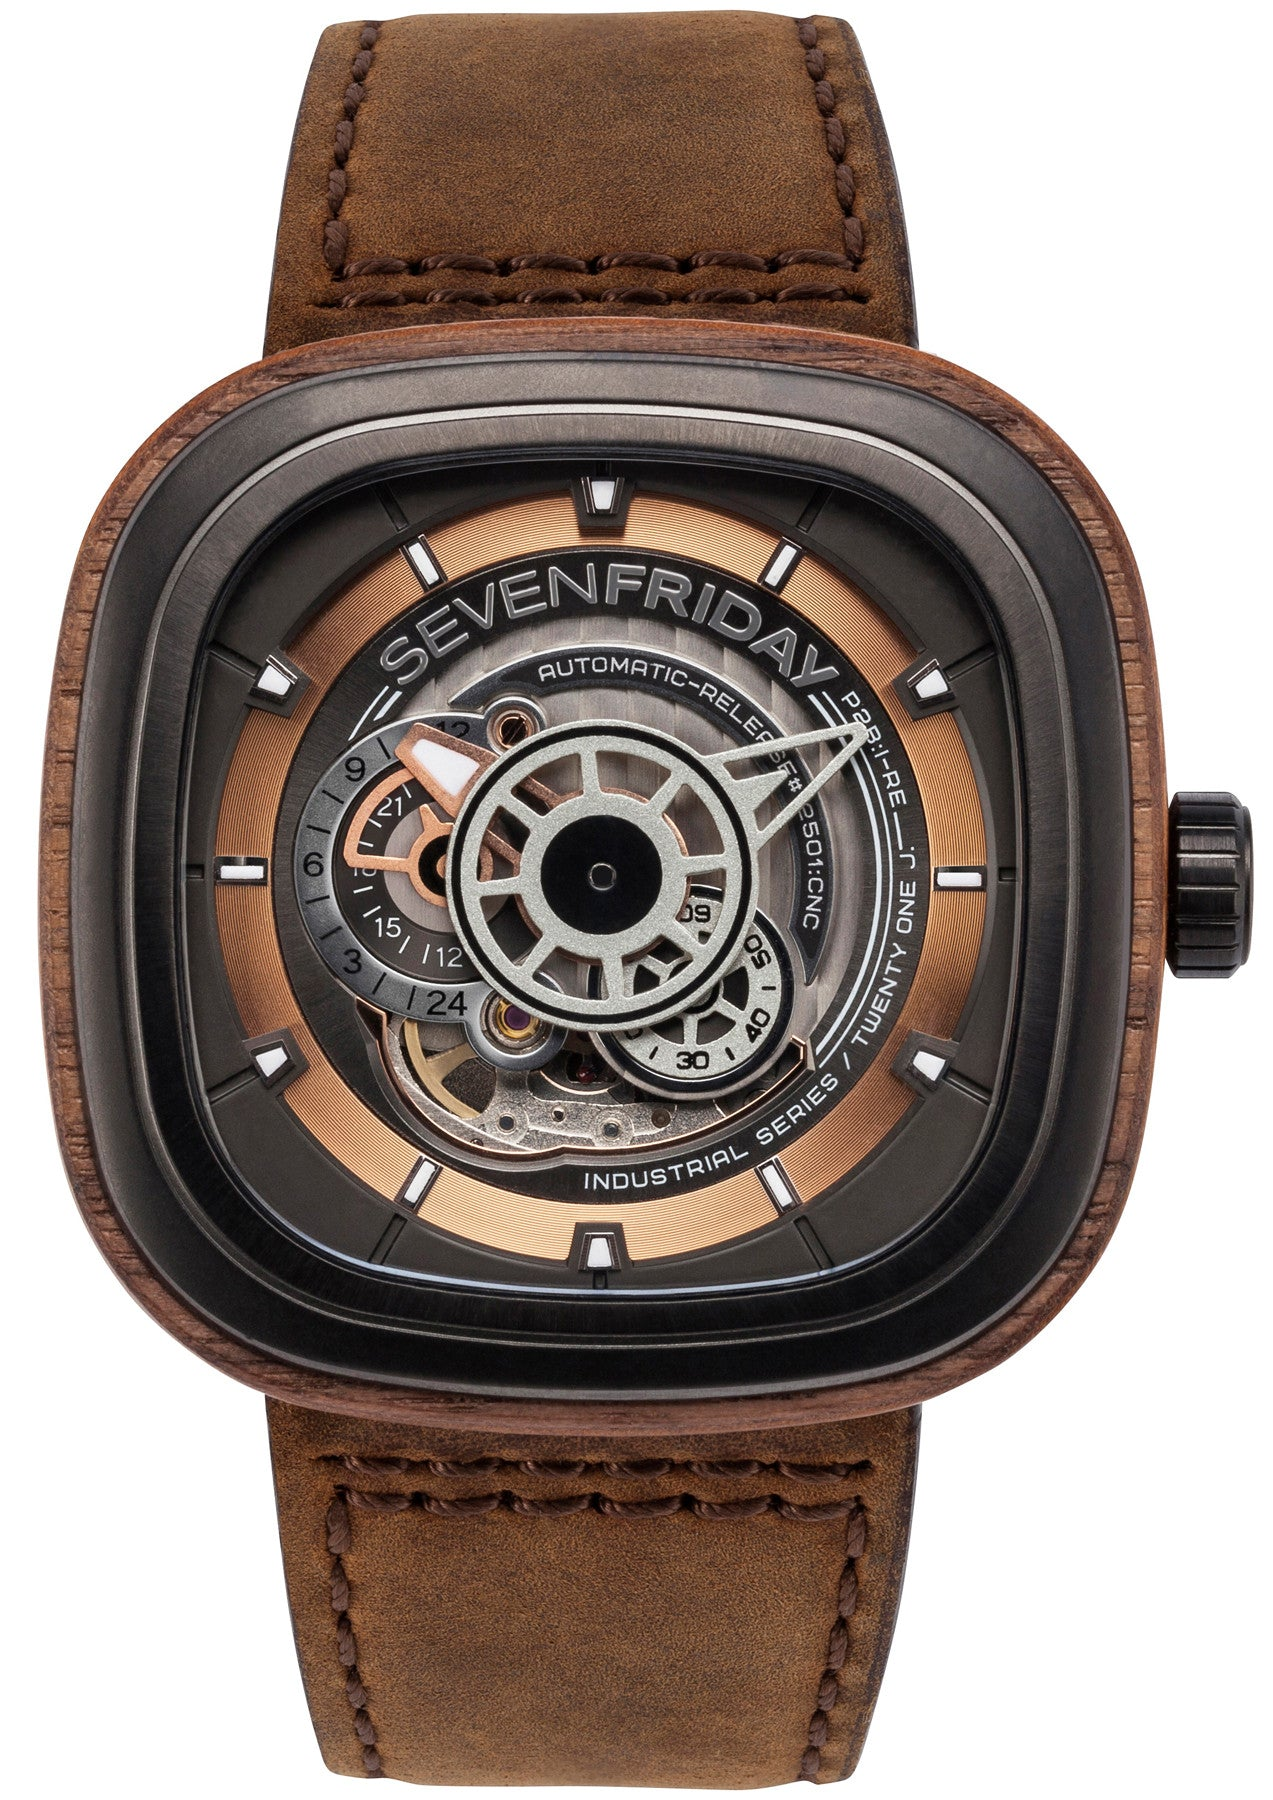 Limited Edition Birthday Collection: SevenFriday Watch Woody P2B/03 Limited Edition D P2B/03-W